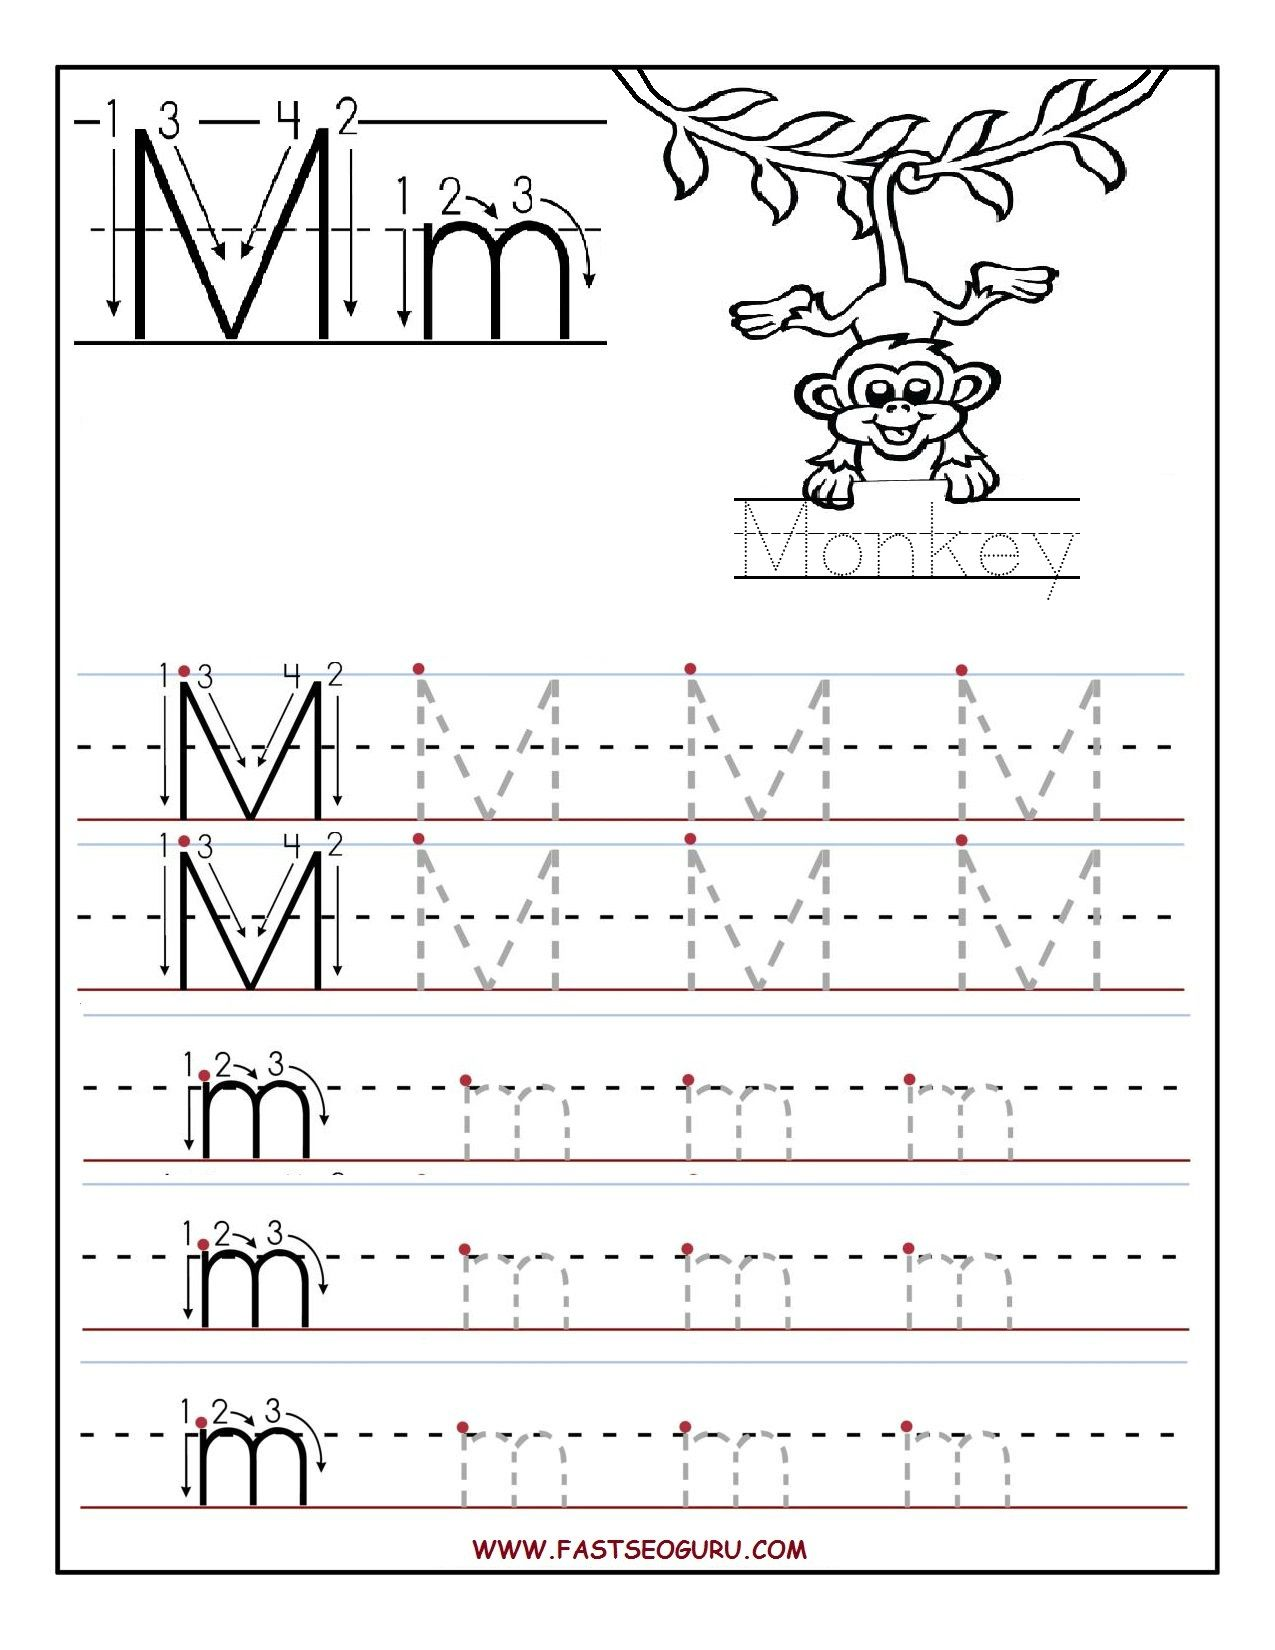 Printable letter M tracing worksheets for preschool – Abc Trace Worksheet